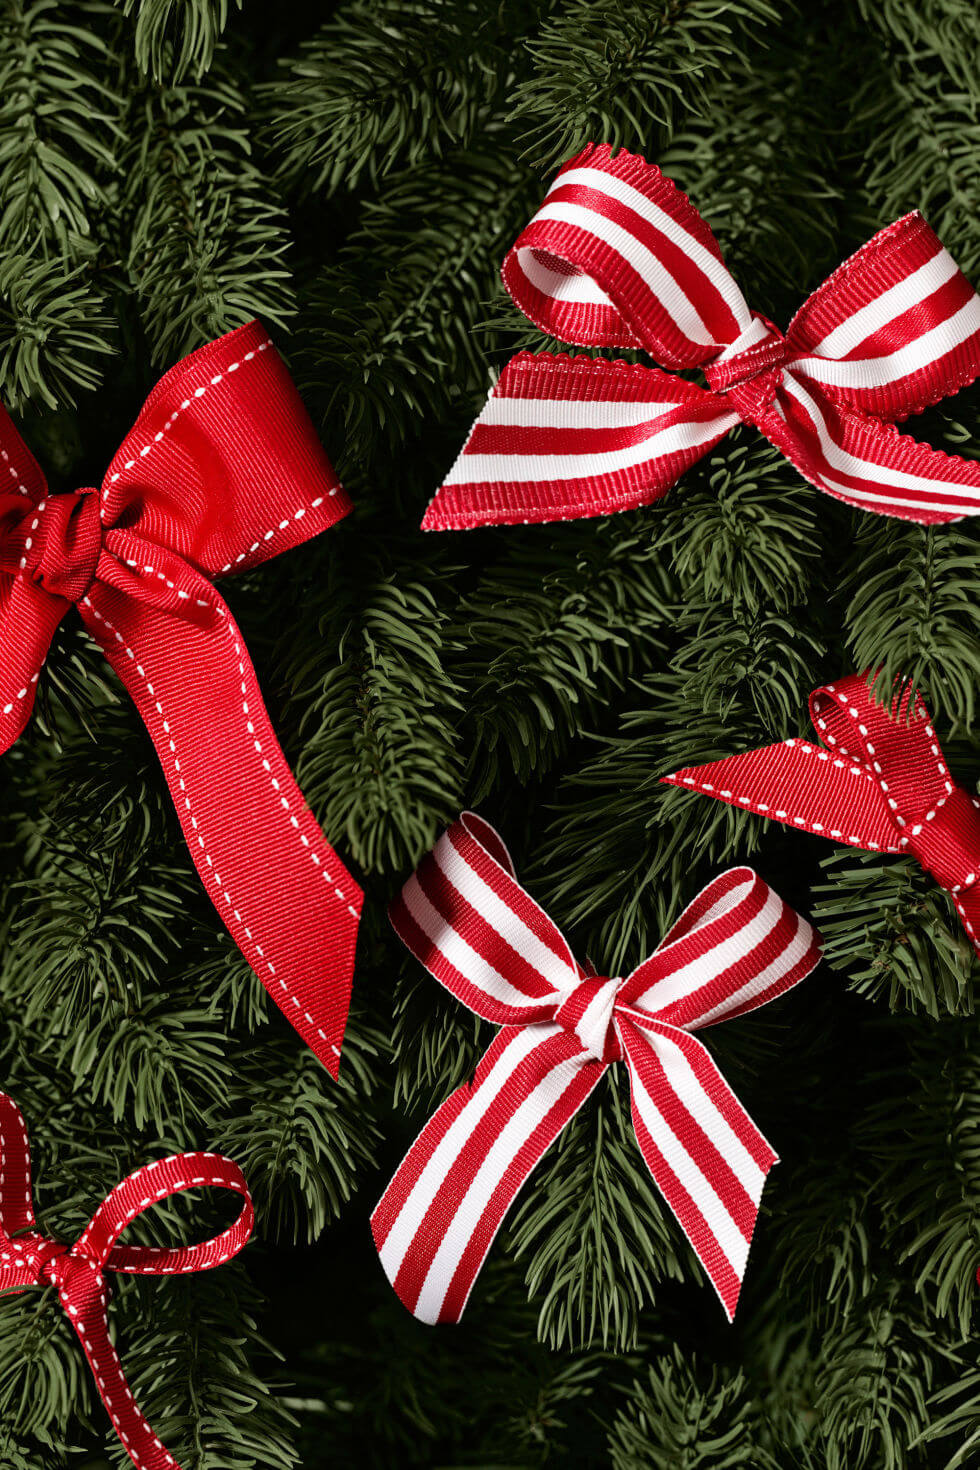 Trim Your Tree in Candy-striped Bows